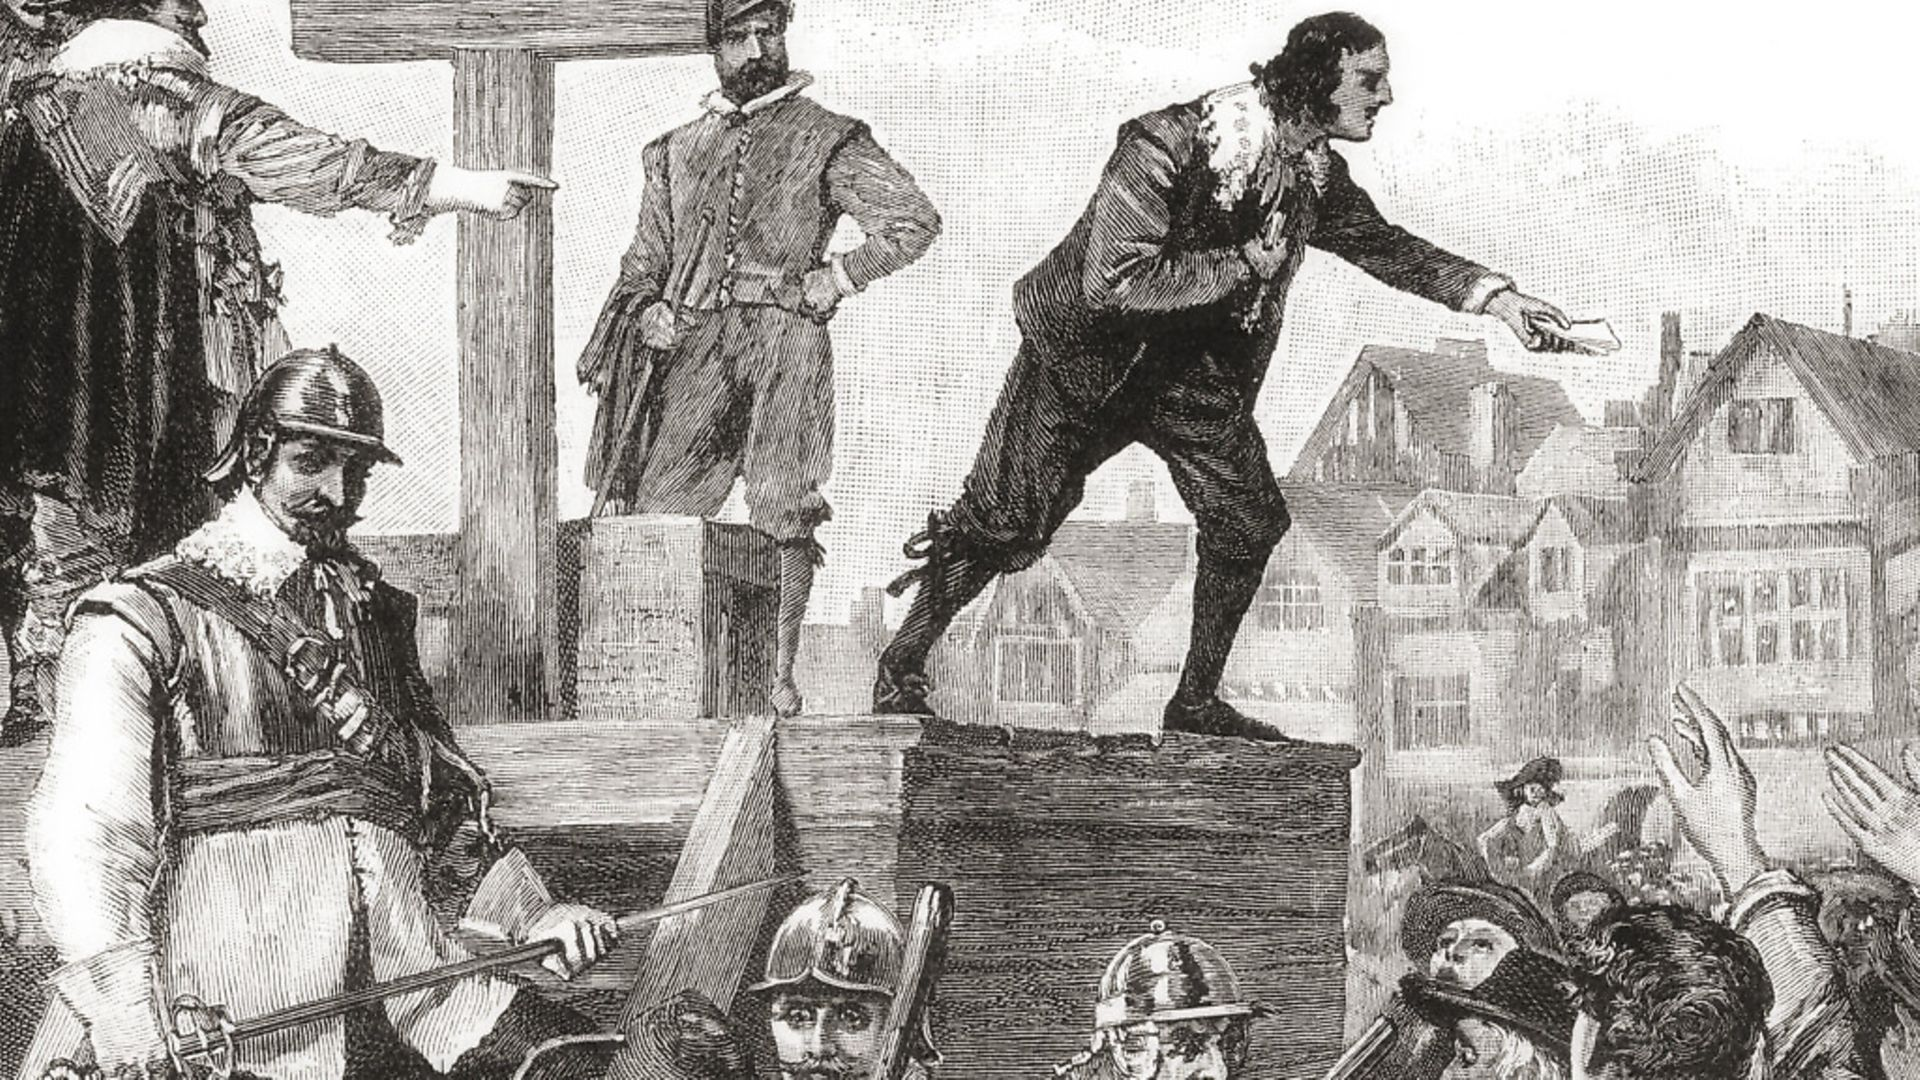 John Lilburne on the pillory, 1638, arrested for printing and circulating unlicensed books. John Lilburne, 1614 � 1657, aka Freeborn John. English political Leveller. From The Century Edition of Cassell's History of England, published 1901. (Photo by: Universal History Archive/UIG via Getty Images) - Credit: UIG via Getty Images